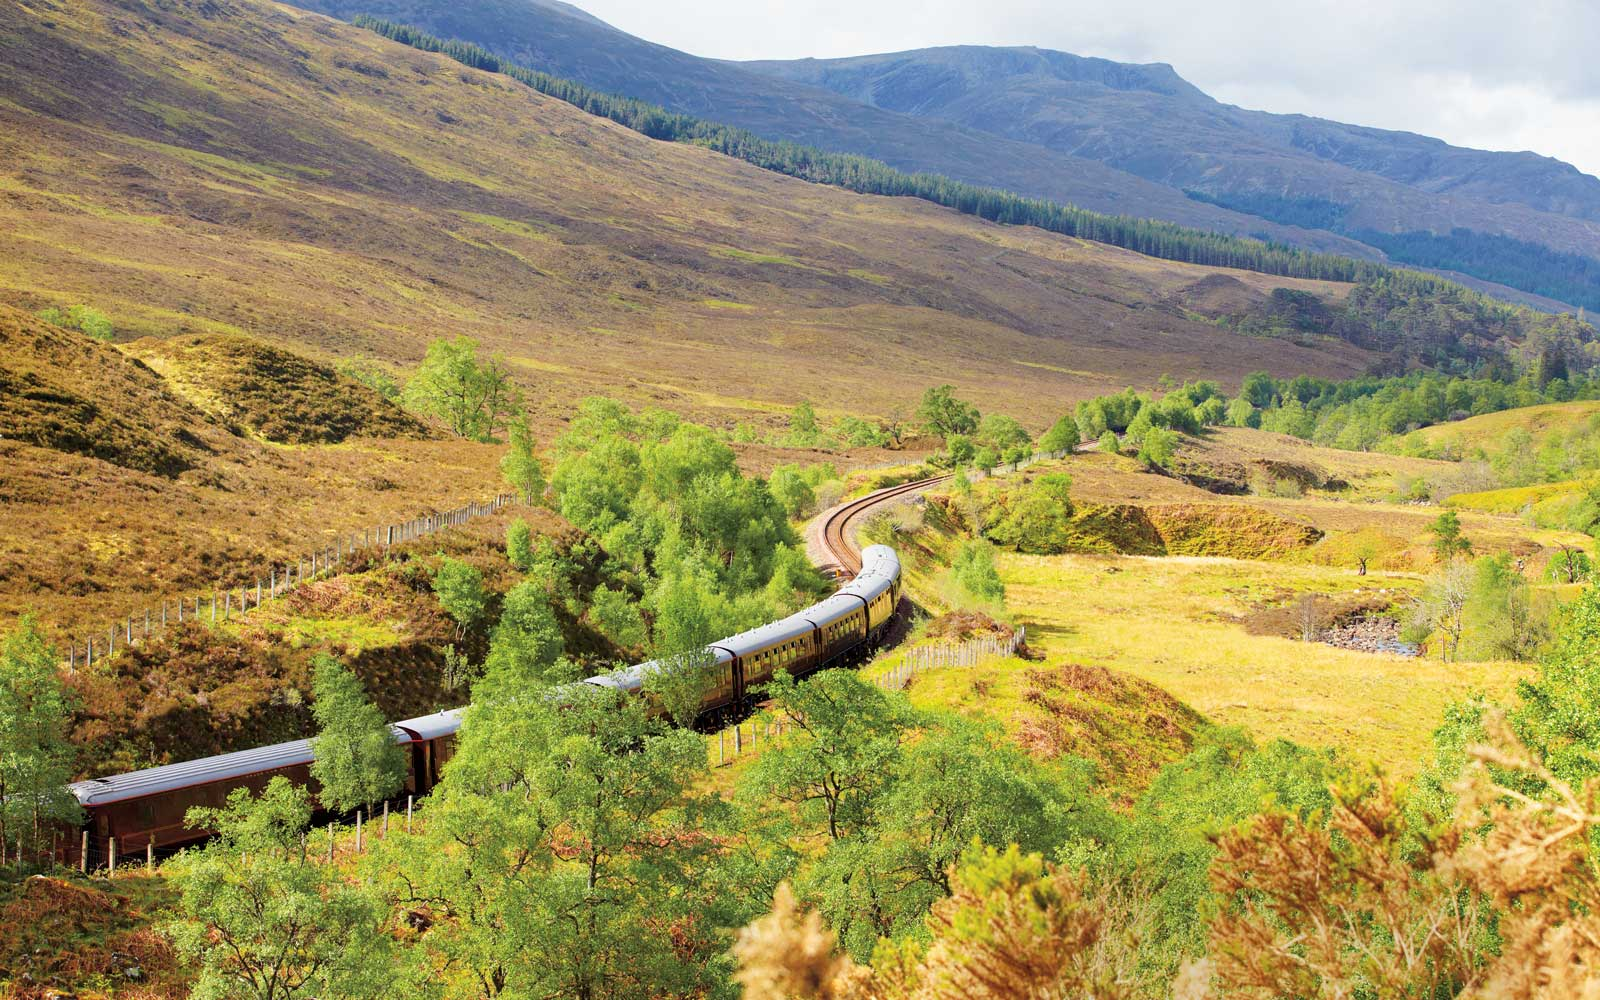 Belmond's Royal Scotsman luxury train